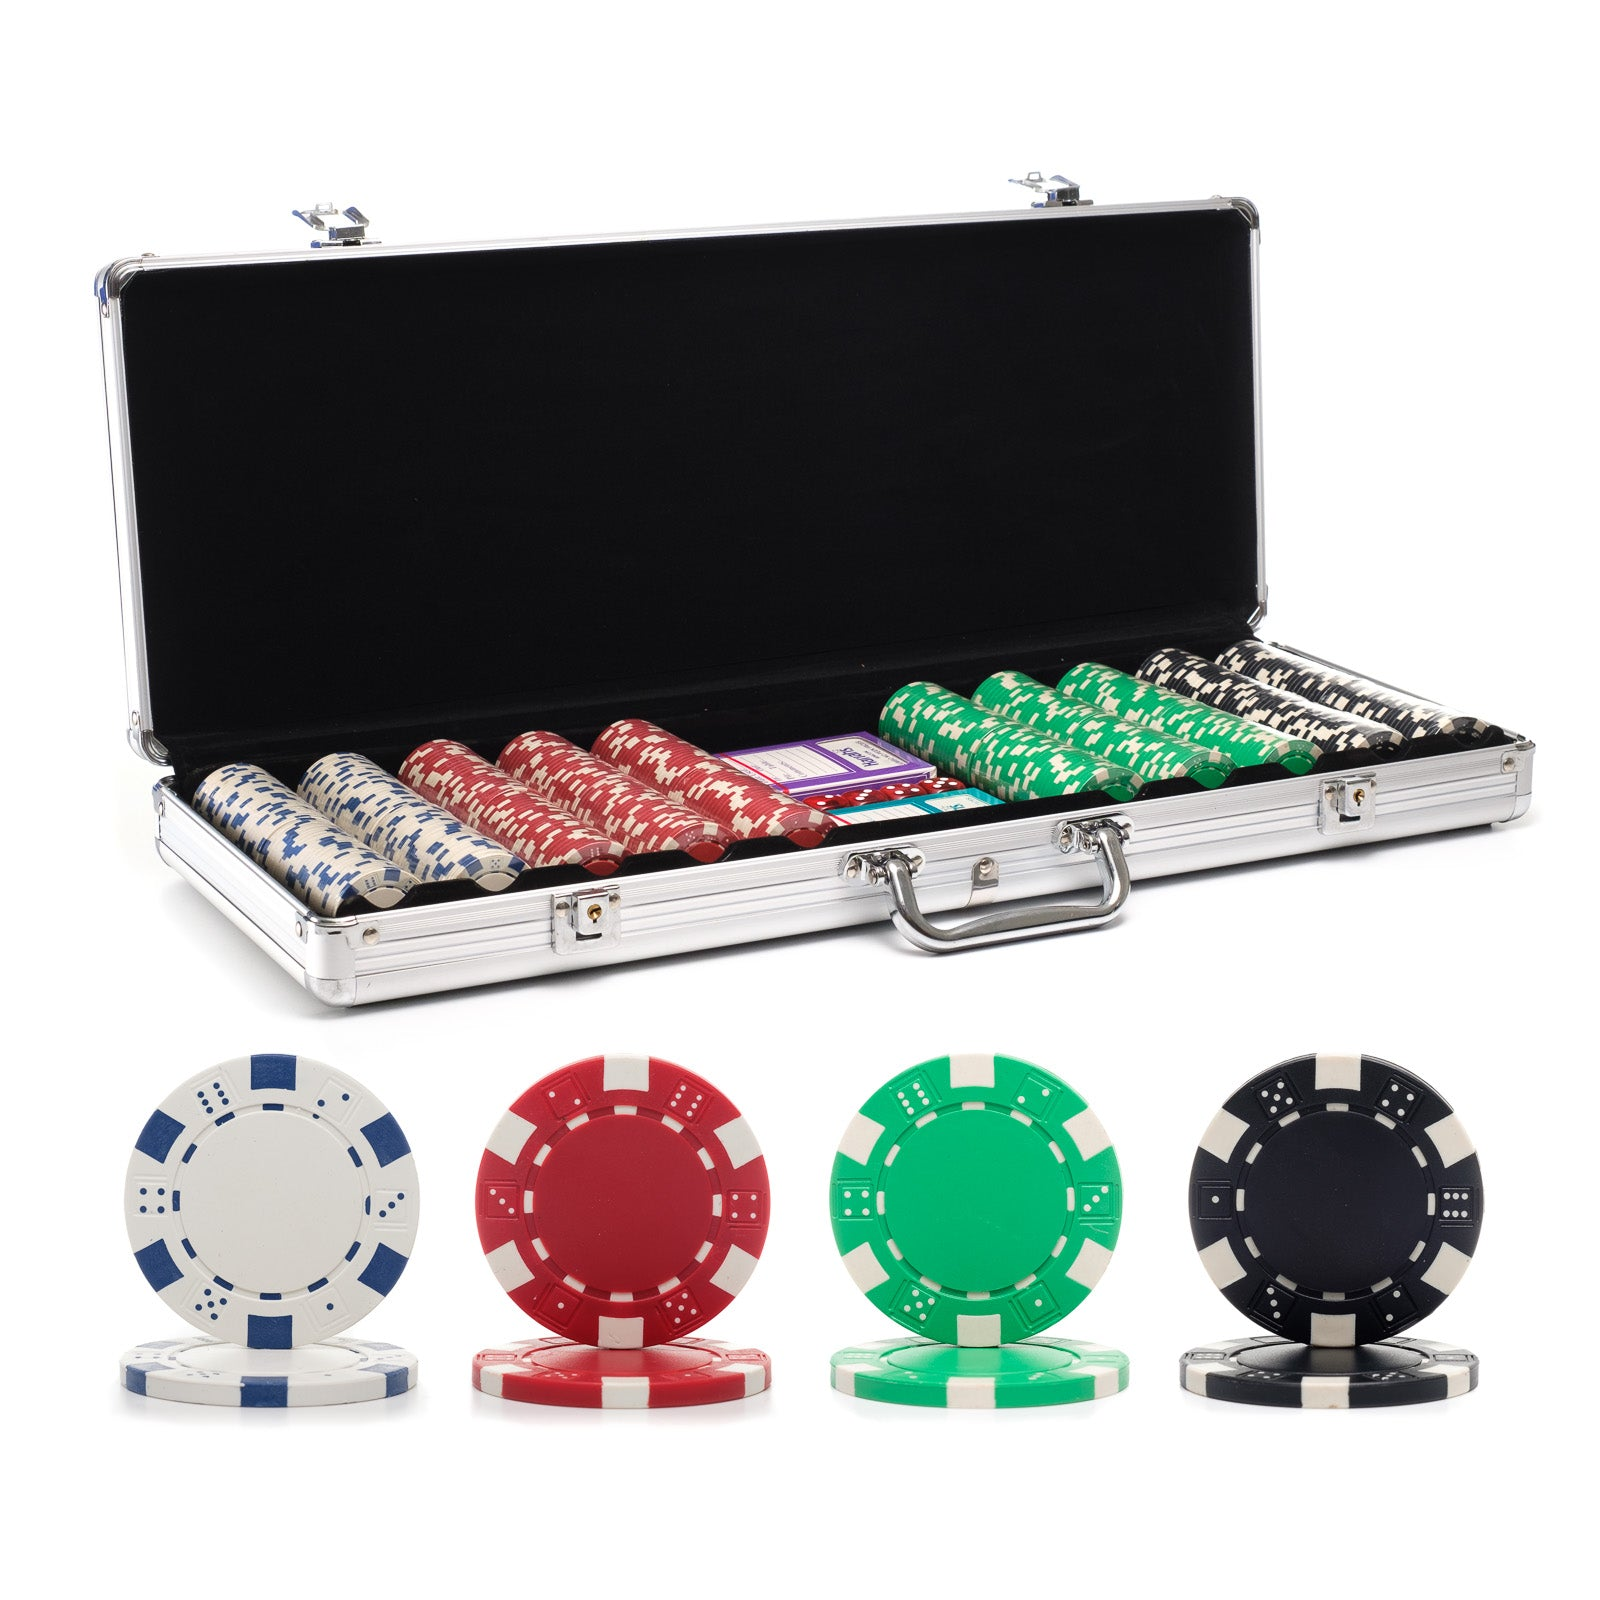 11.5g Dice Rim Poker Chip Set with Aluminum Case  sc 1 st  Casino Supply : poker set table - Pezcame.Com